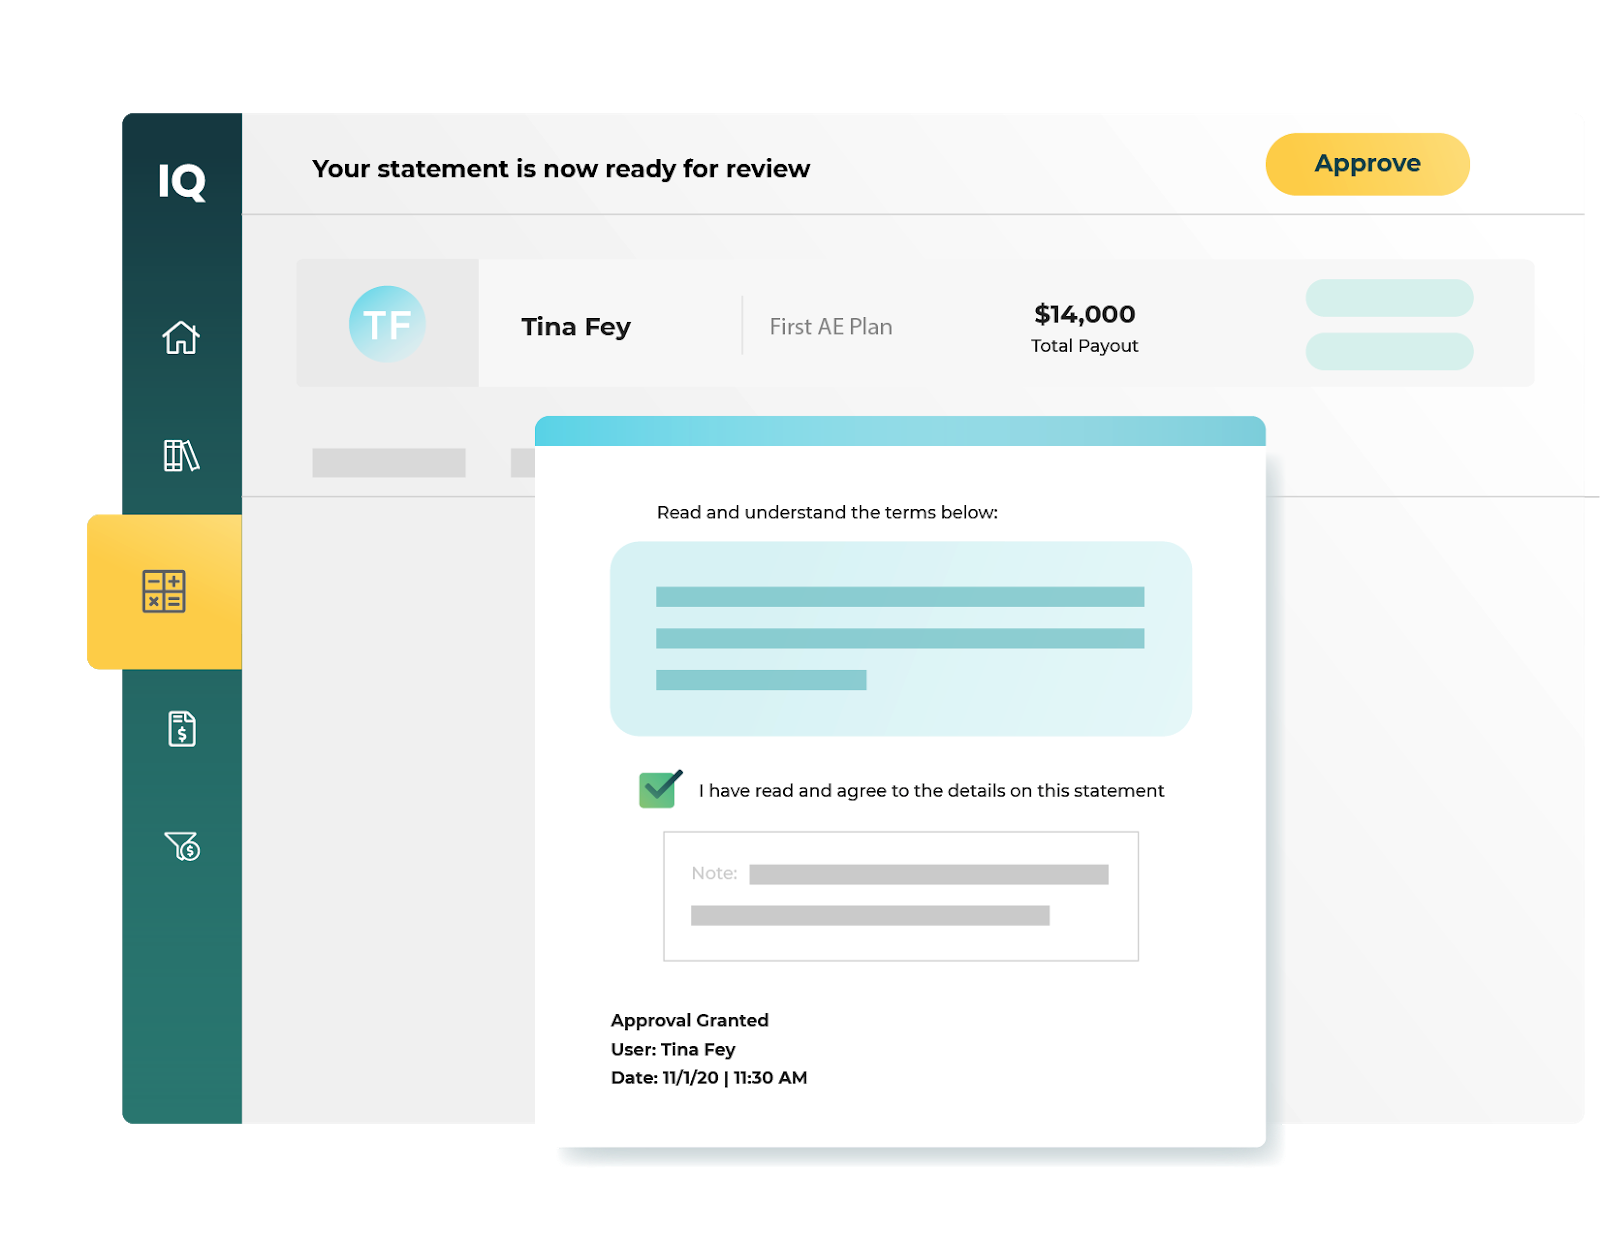 screenshot of payout approval in CaptivateIQ